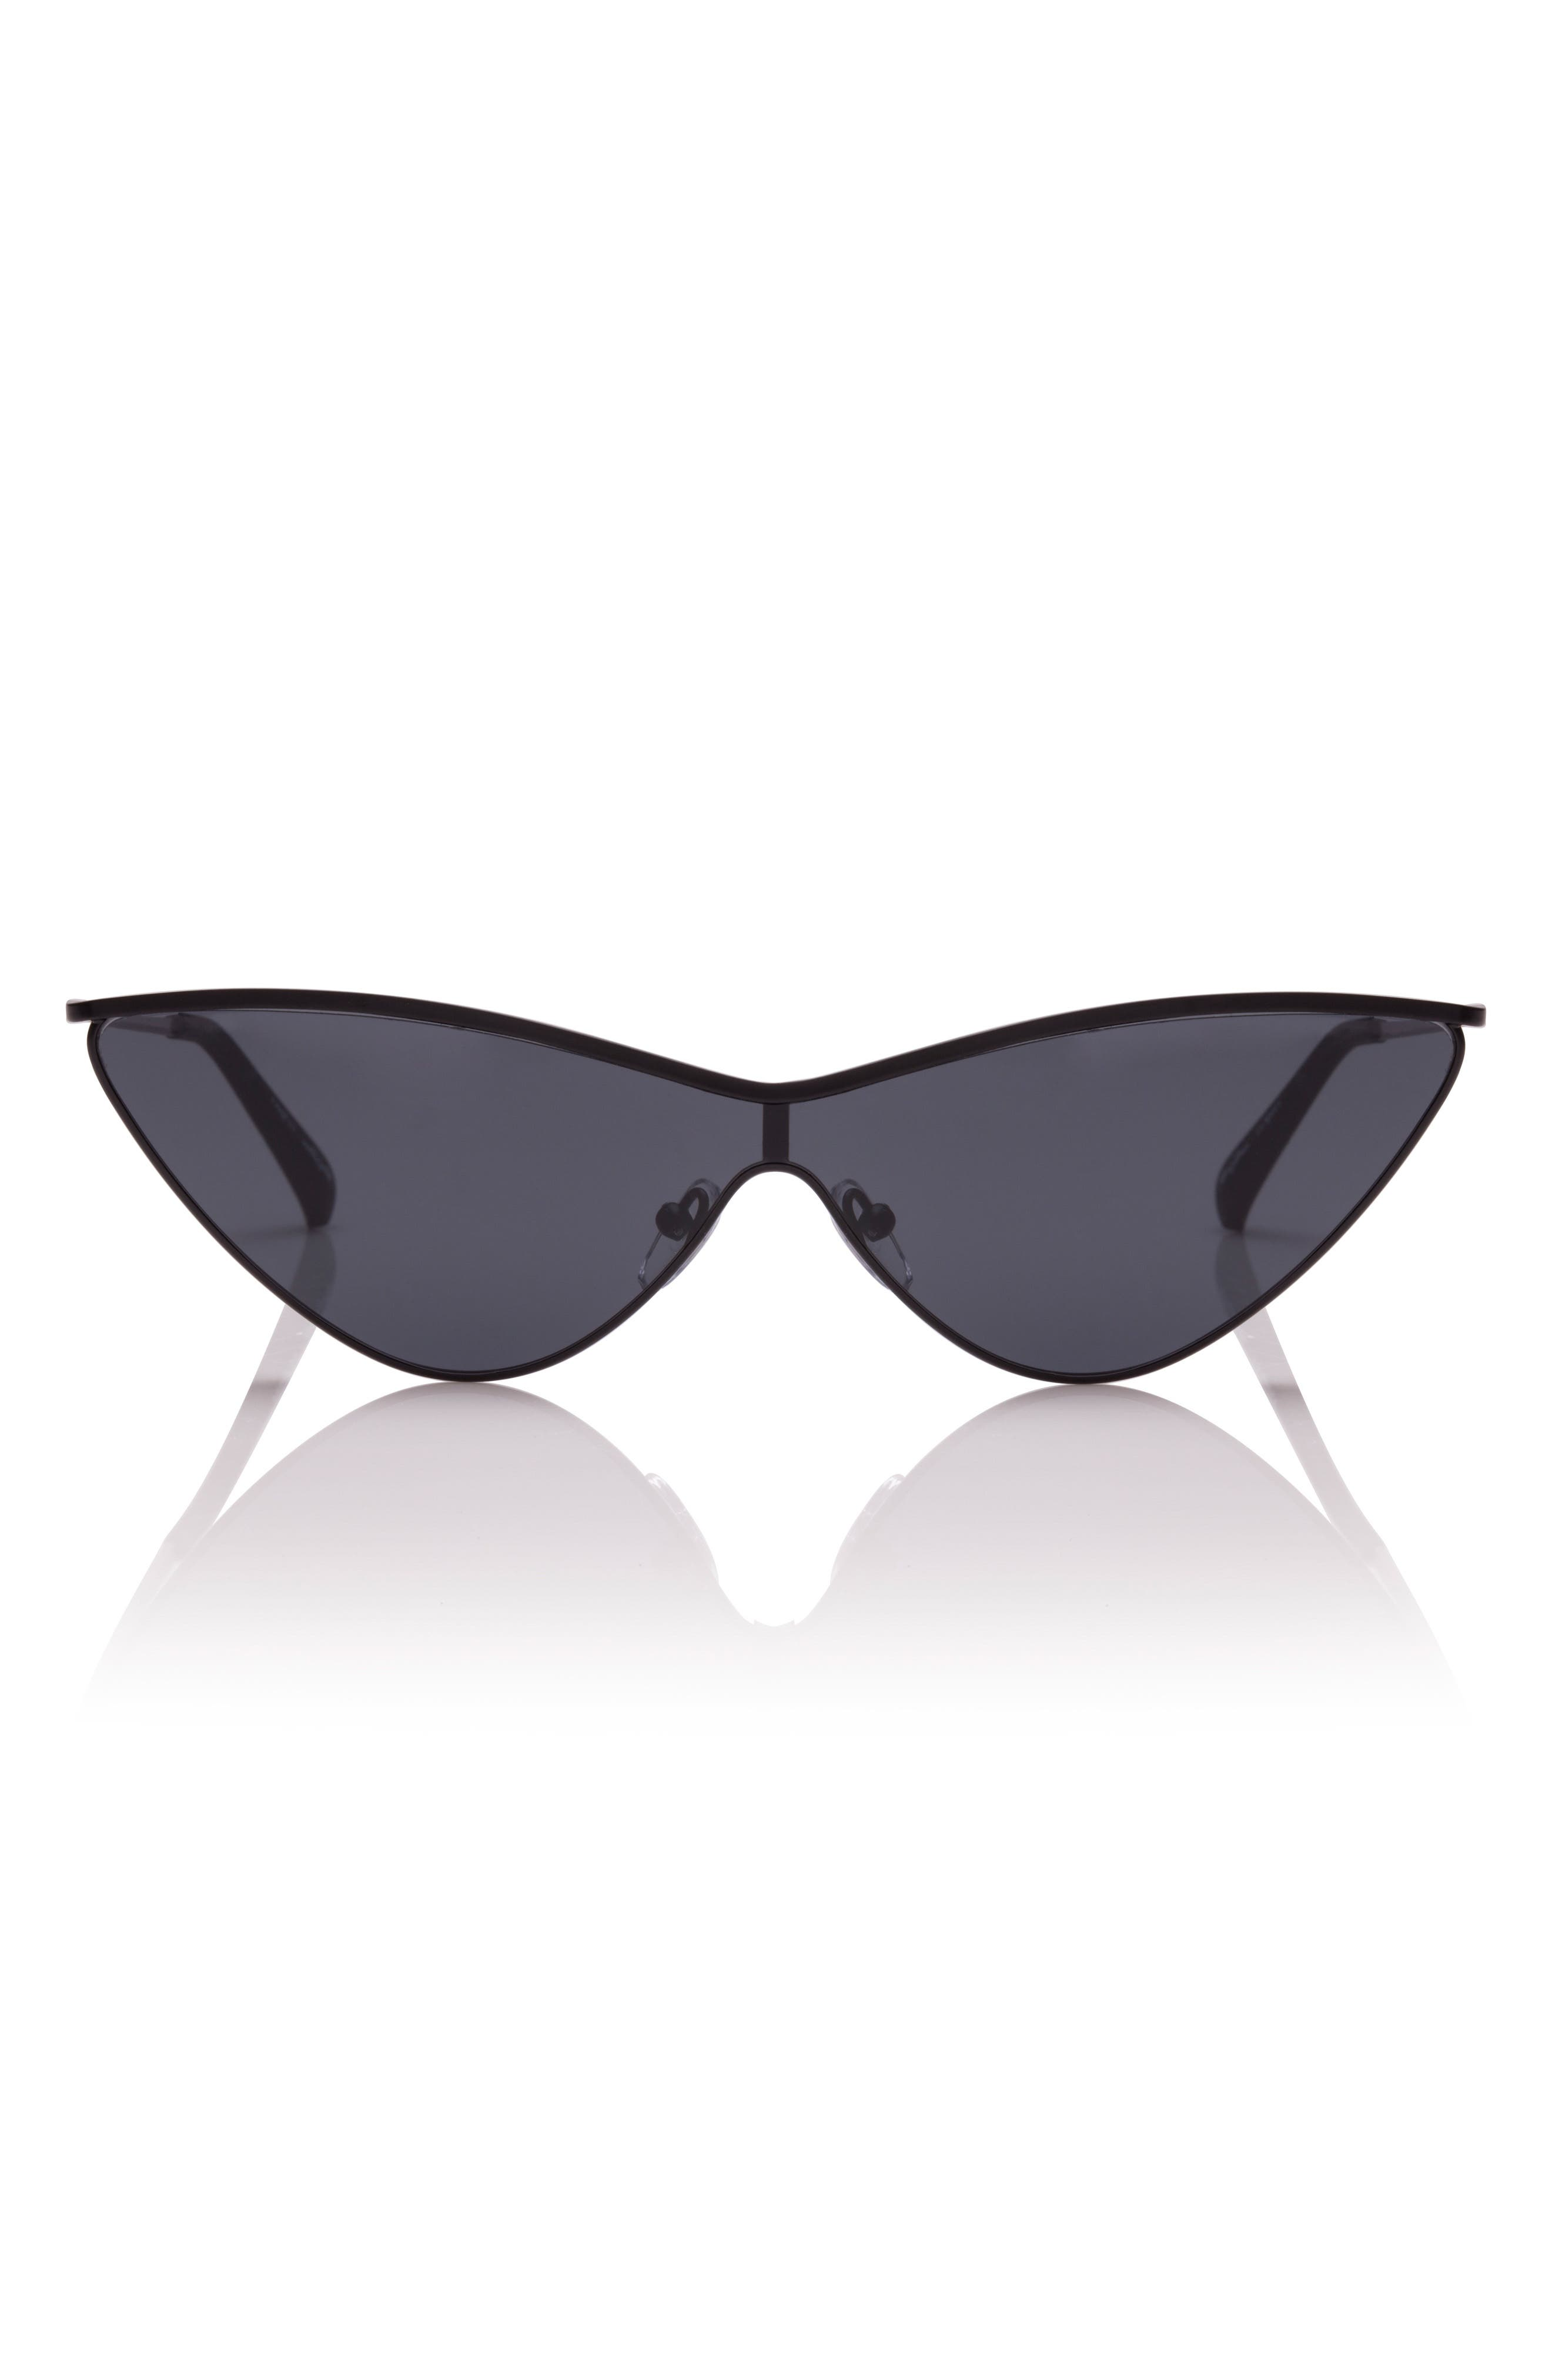 The Fugitive 71mm Sunglasses,                             Main thumbnail 1, color,                             SATIN BLACK